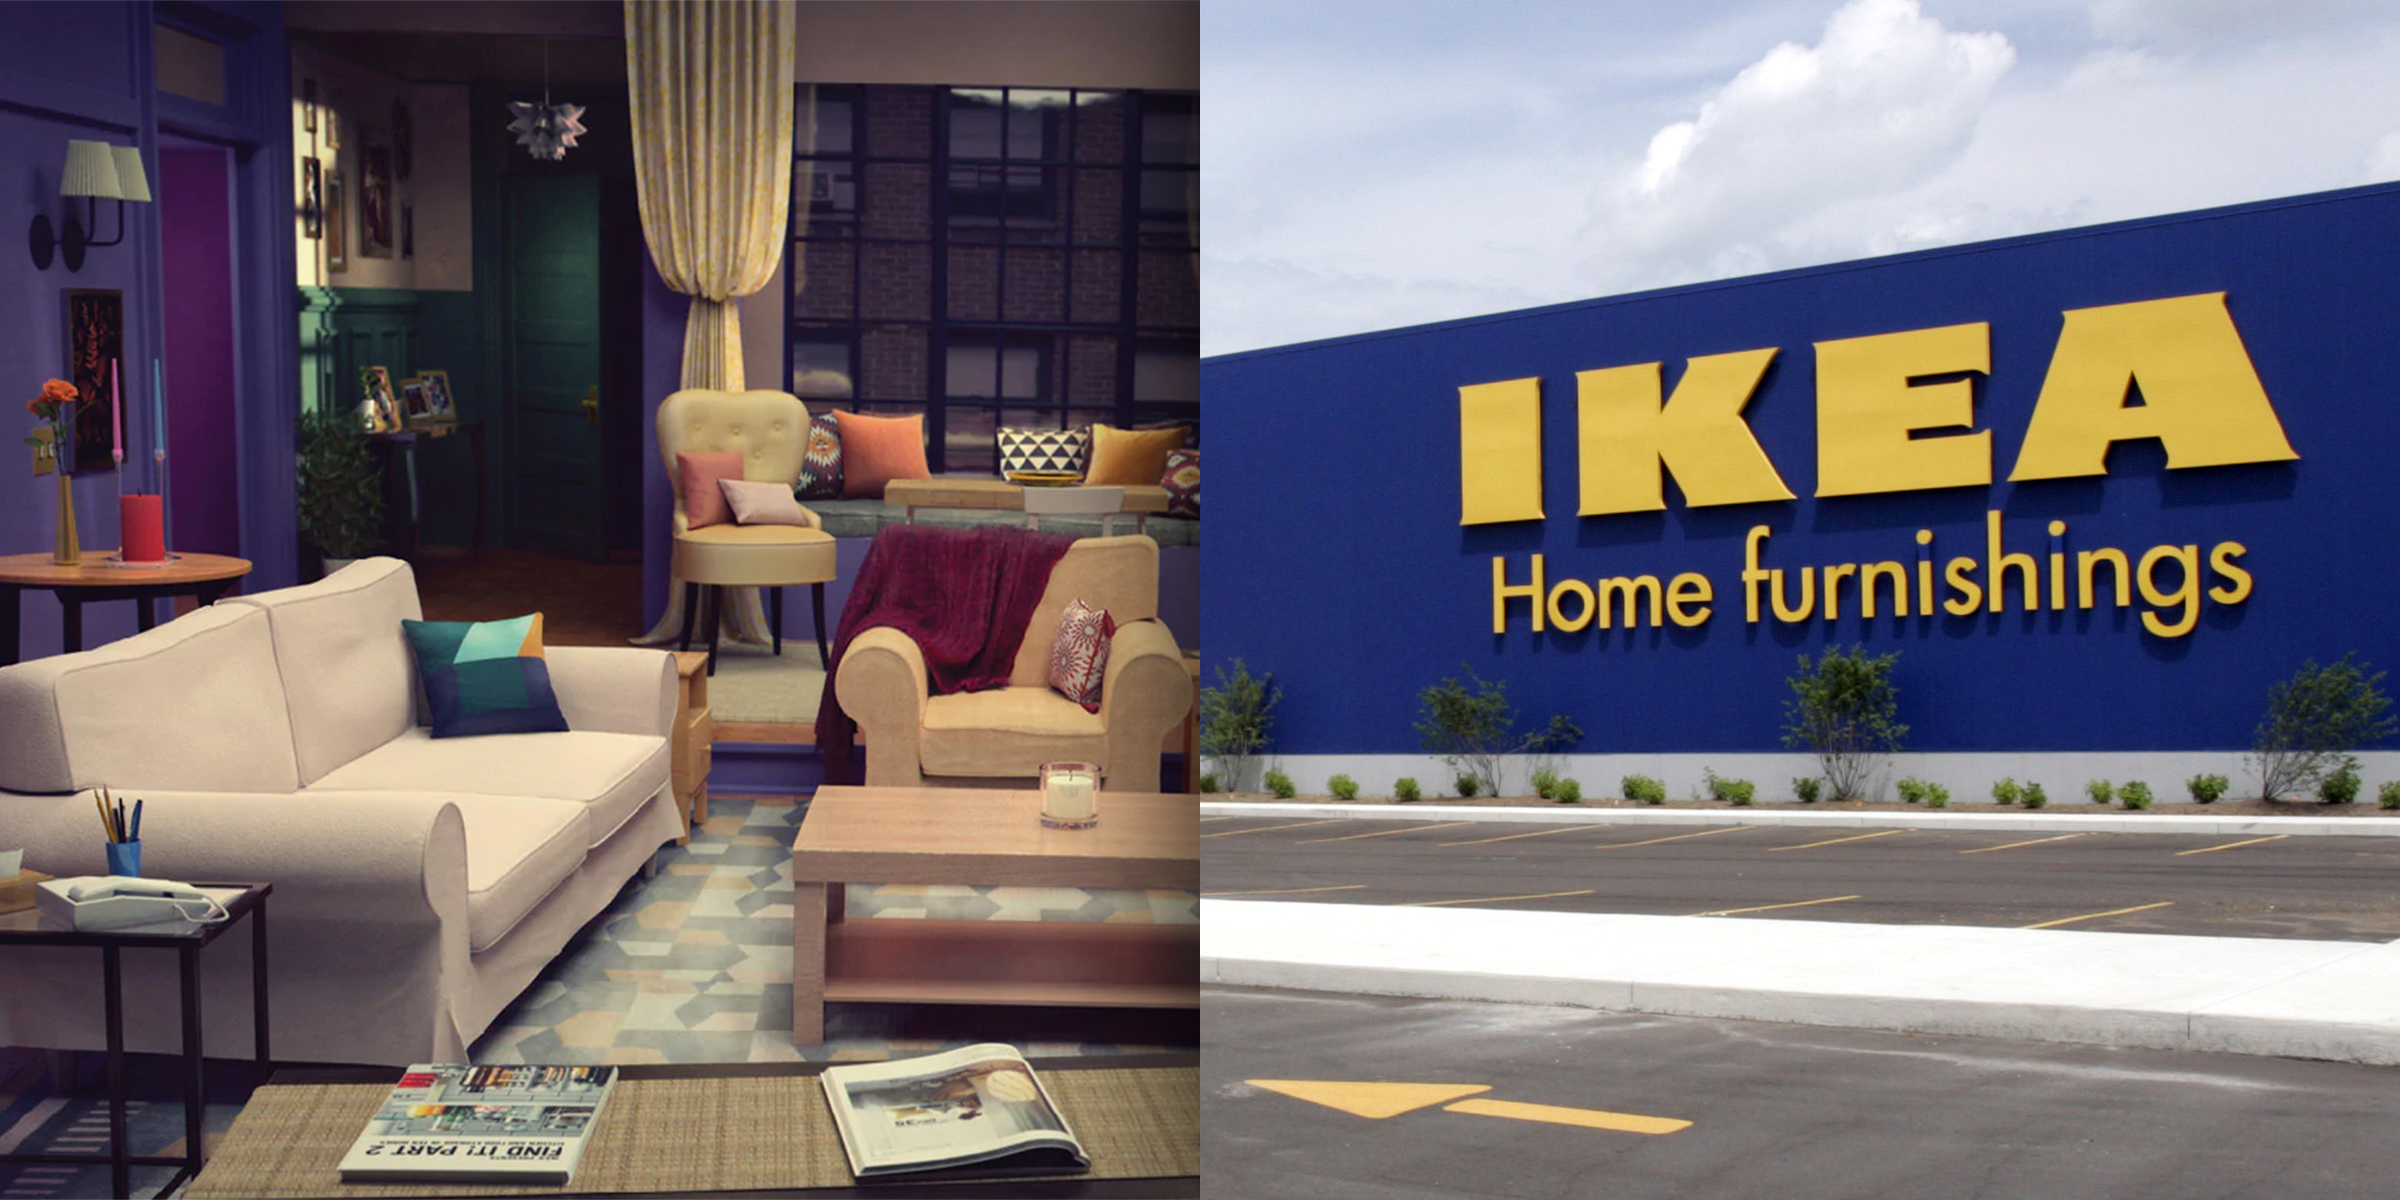 Ikea brings iconic living room from \'Friends\' to life in new ...